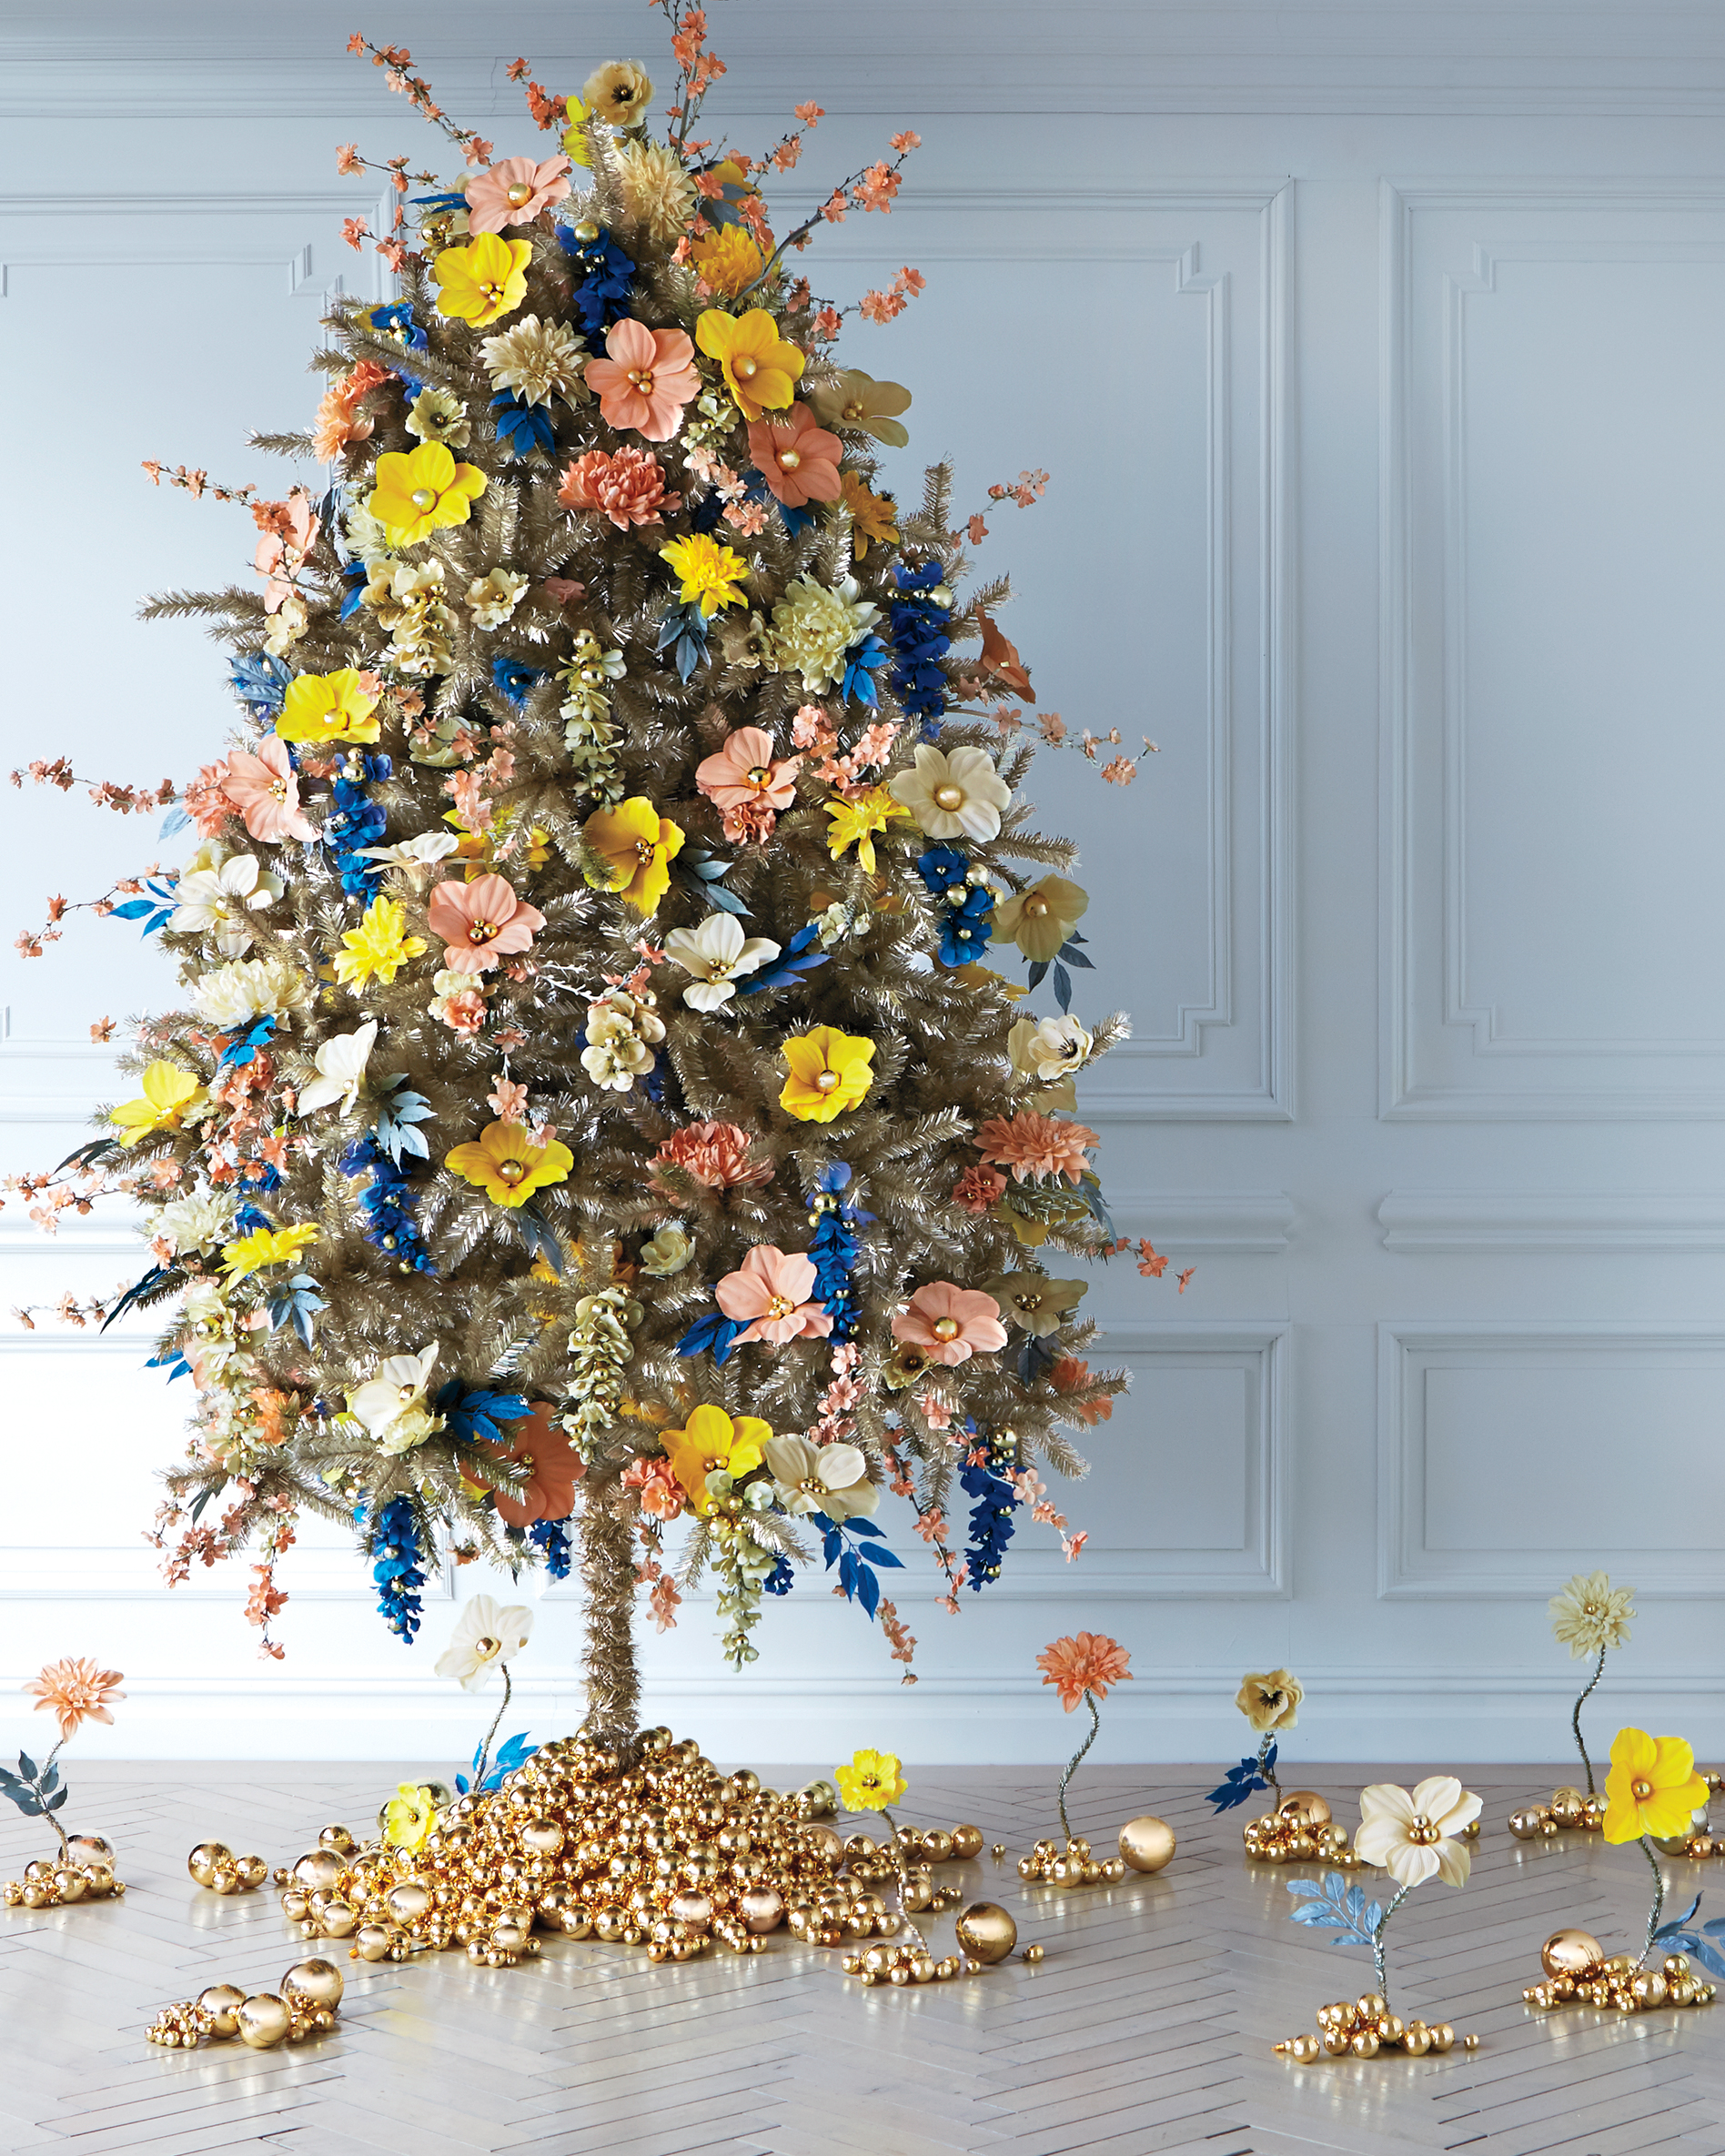 Christmas Tree Decorating Ideas.Creative Christmas Tree Decorating Ideas Martha Stewart